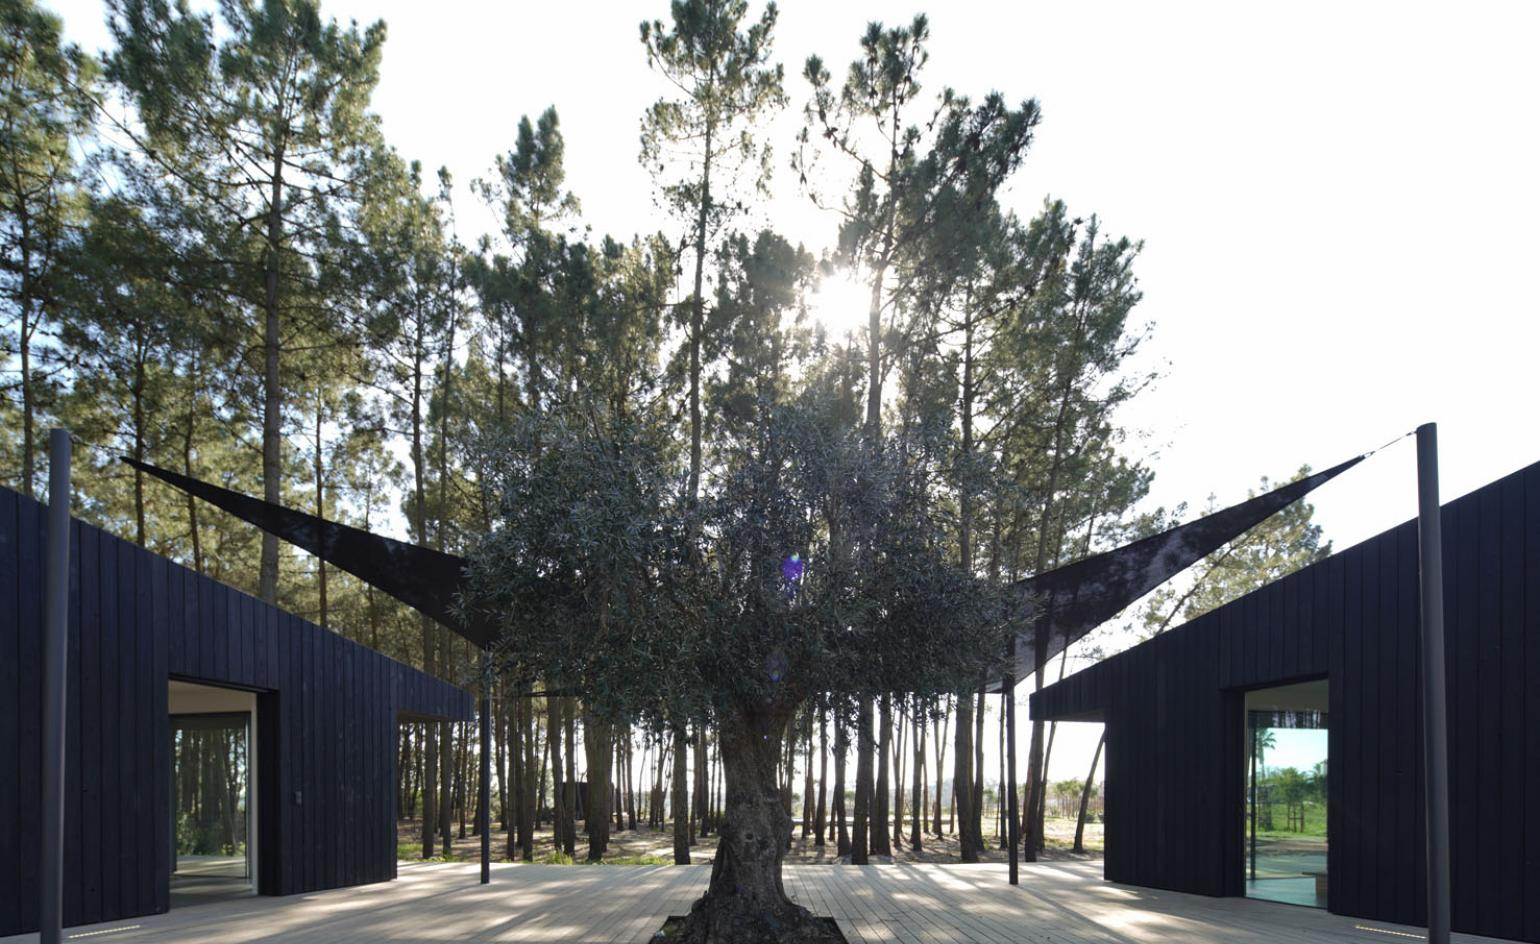 Comporta cabins: sustainable breaks for escape artists